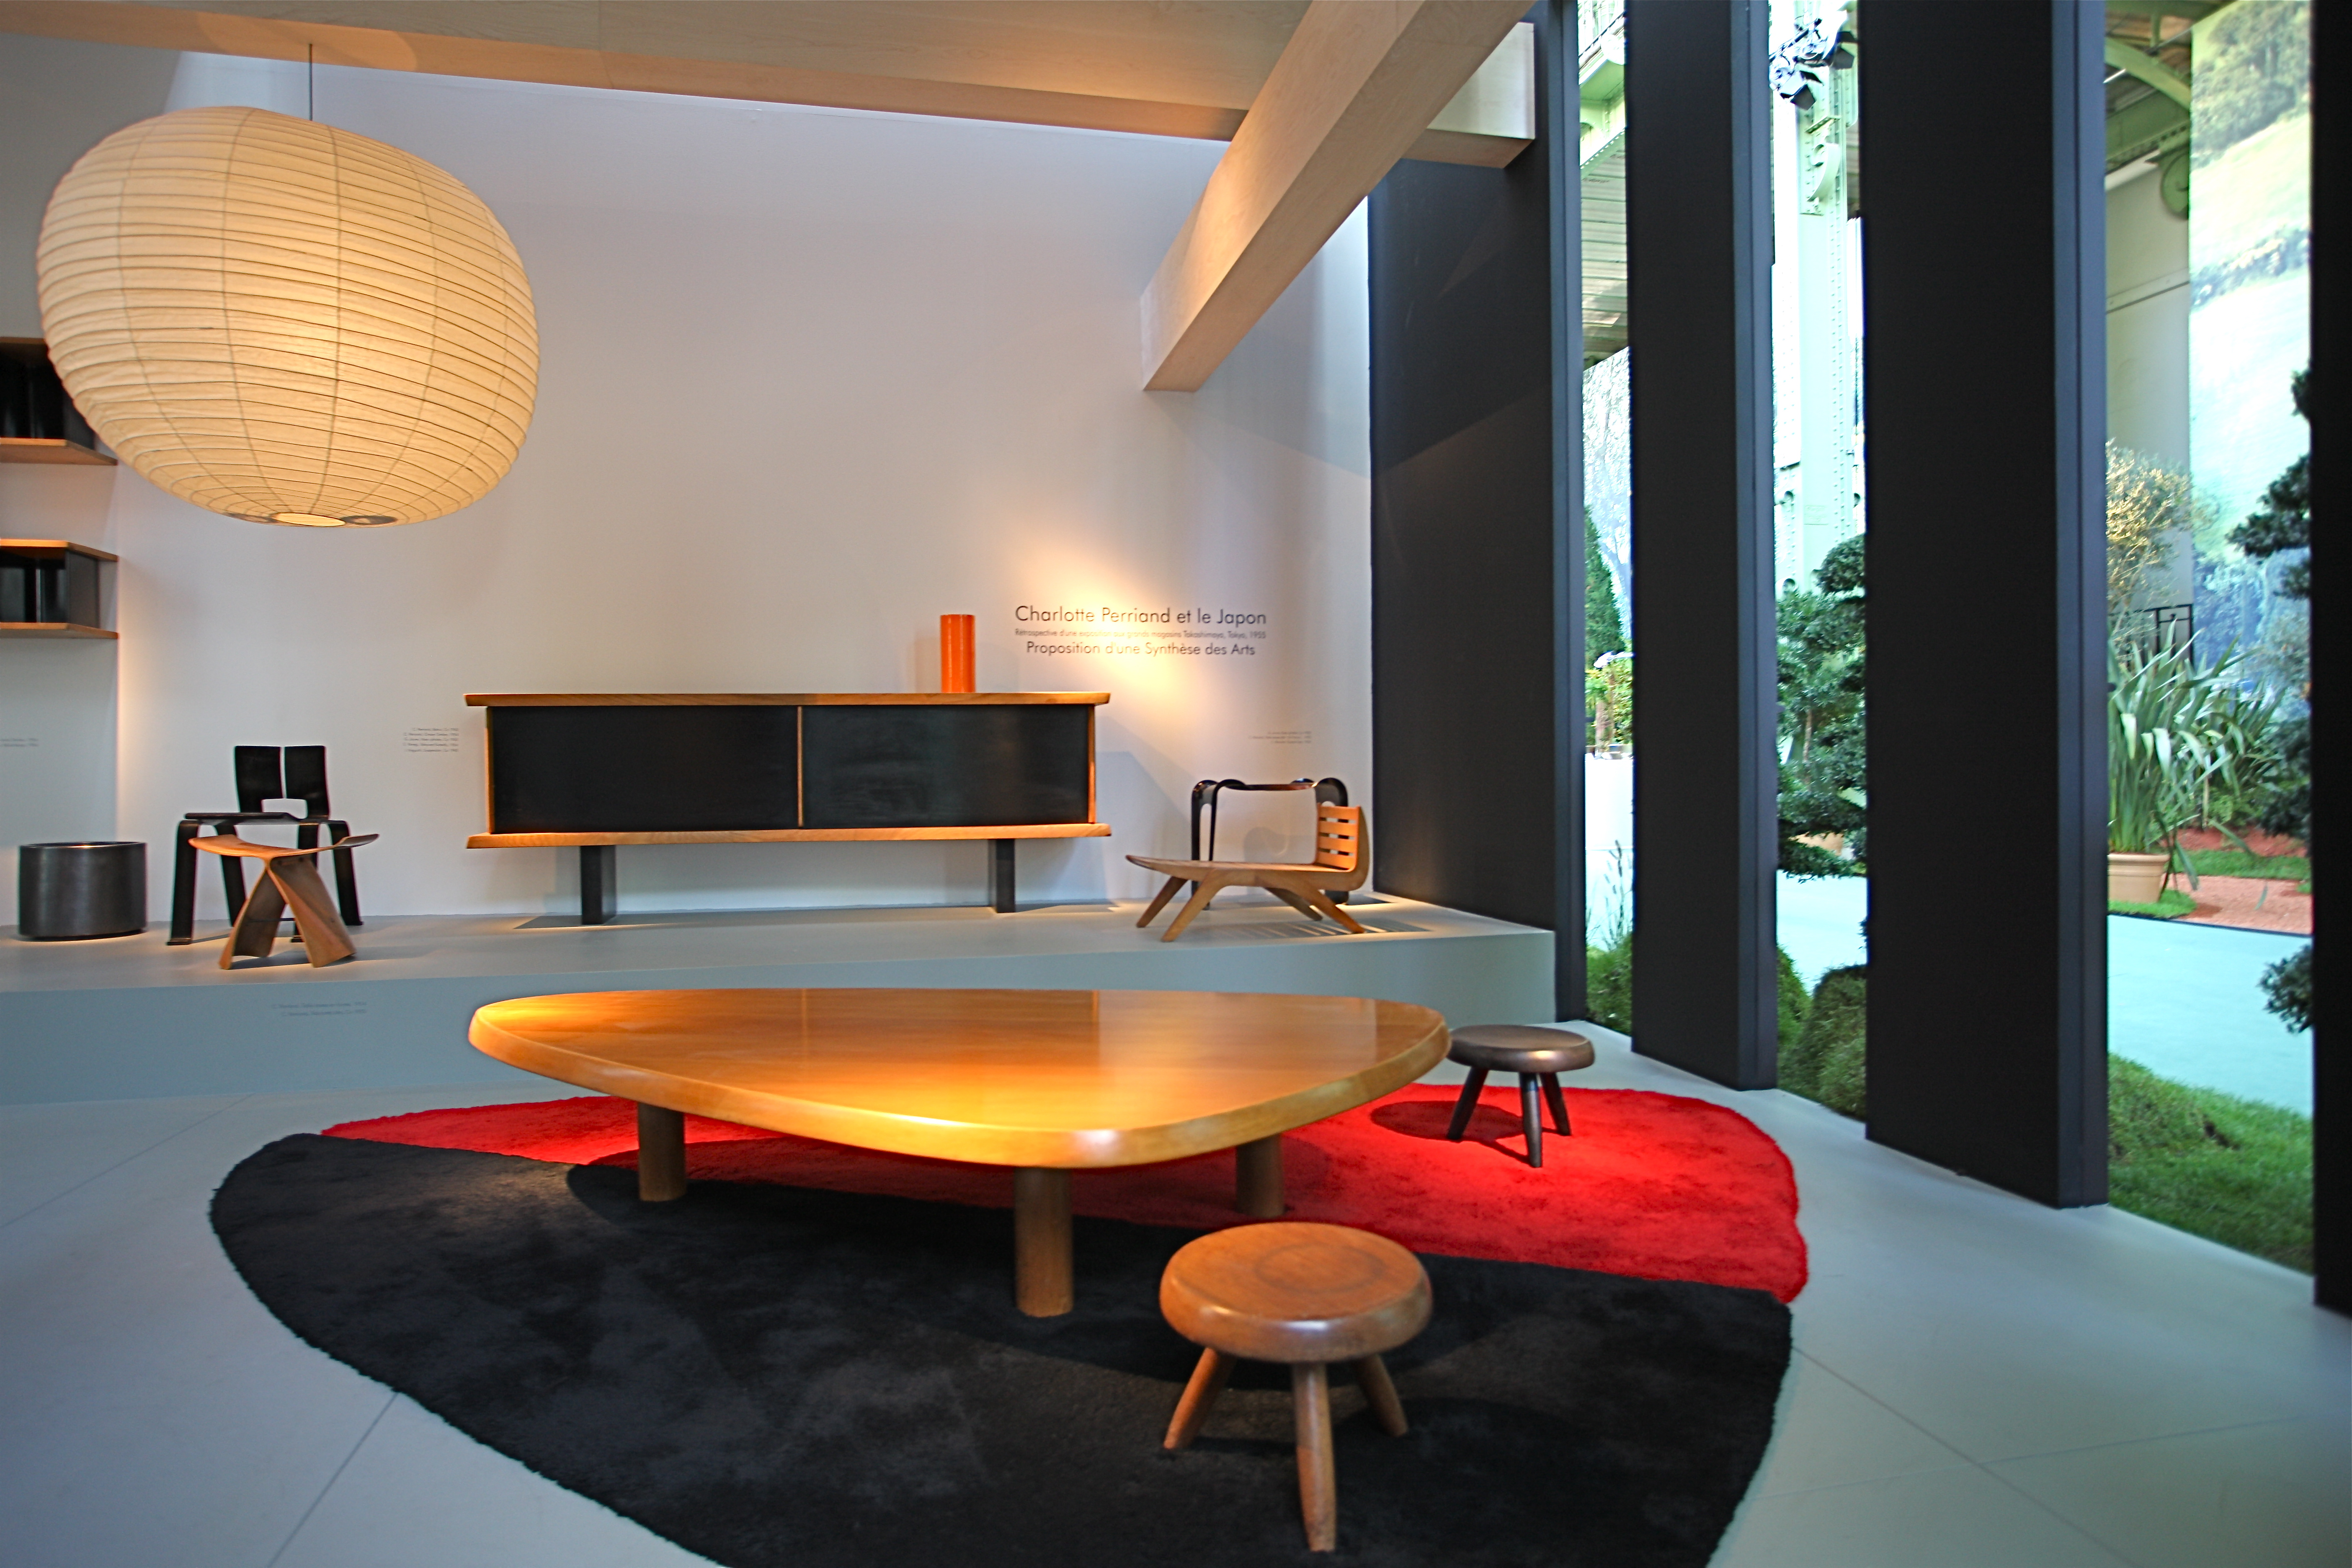 File meubles charlotte perriand jpg wikimedia commons for Le meuble furniture